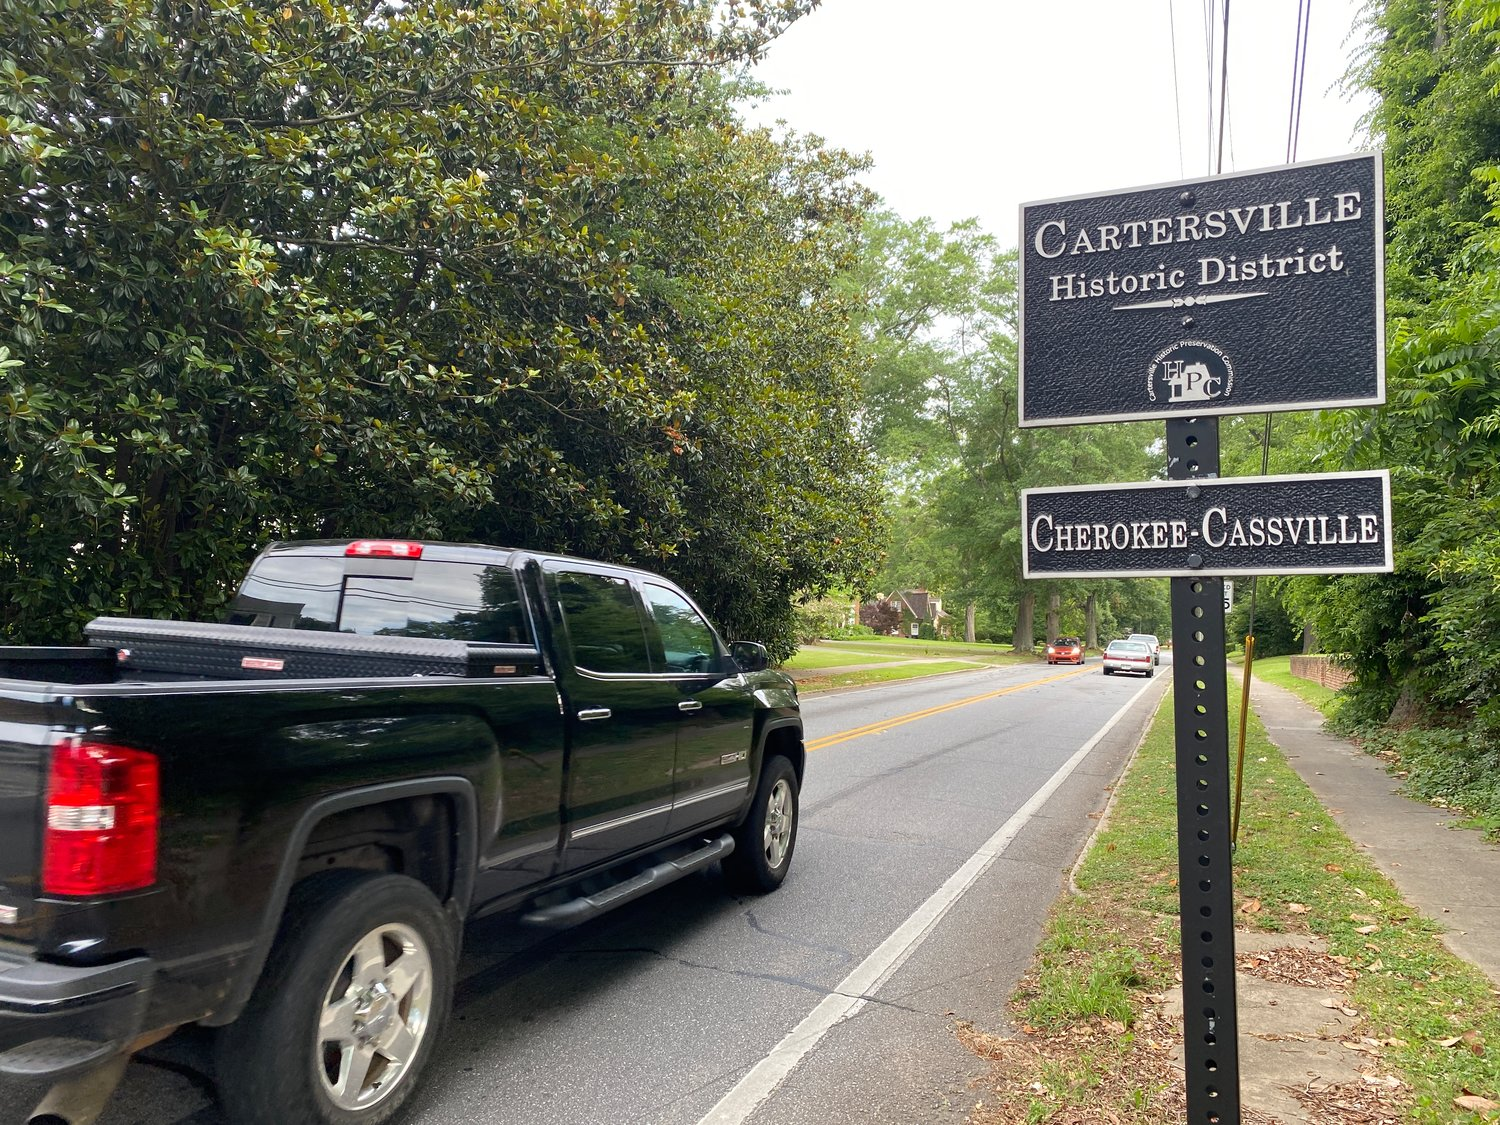 The Cartersville Planning Commission tabled a decision on proposed infill overlays in two historic districts until August.